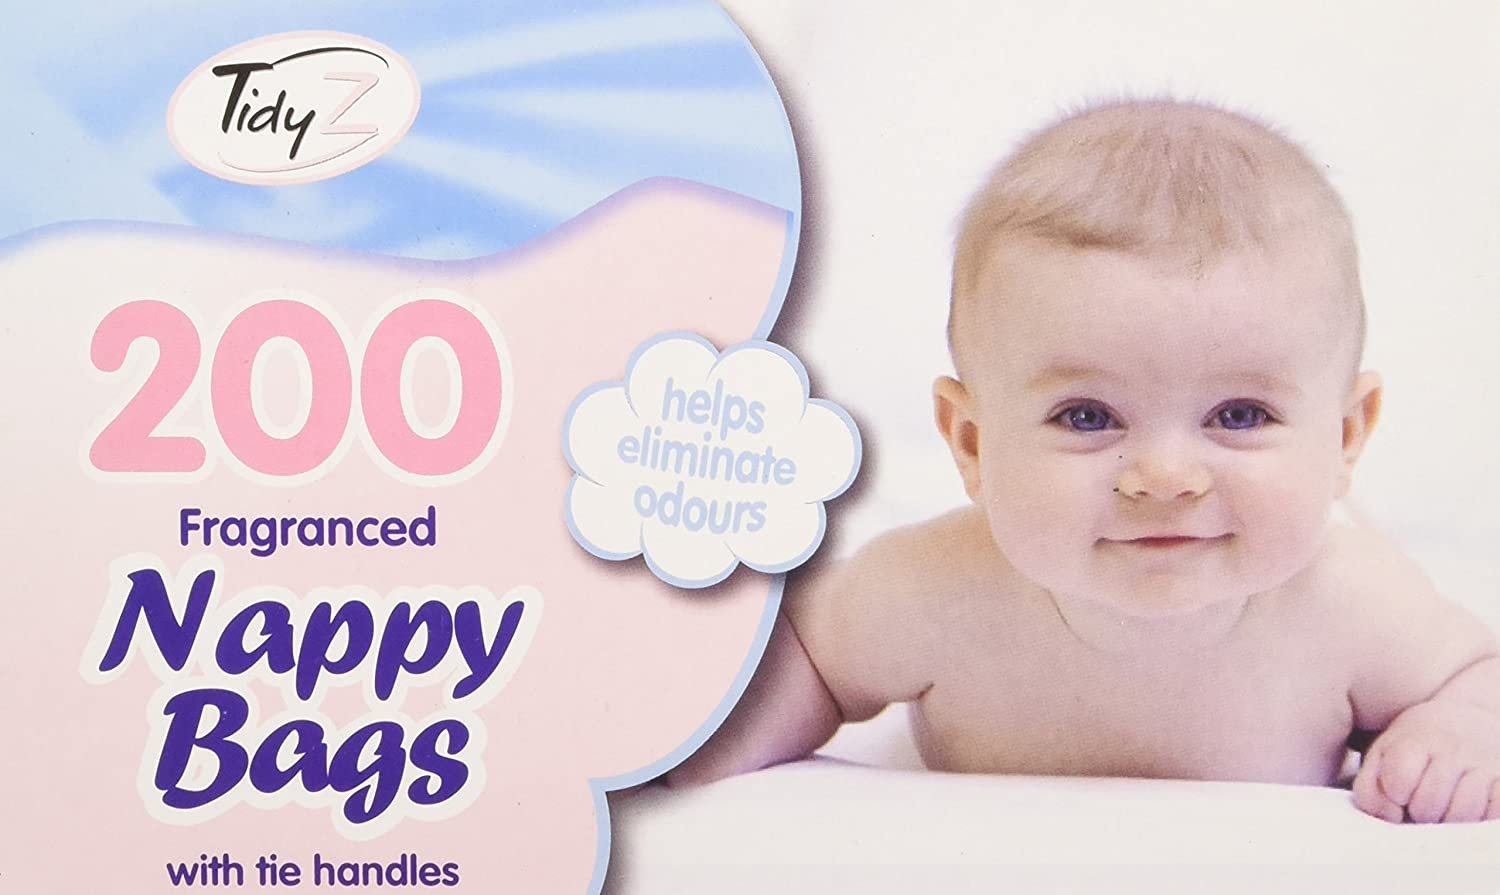 Fragranced Disposable Baby Nappy Bags With Tie Handles Pack of 200 847068